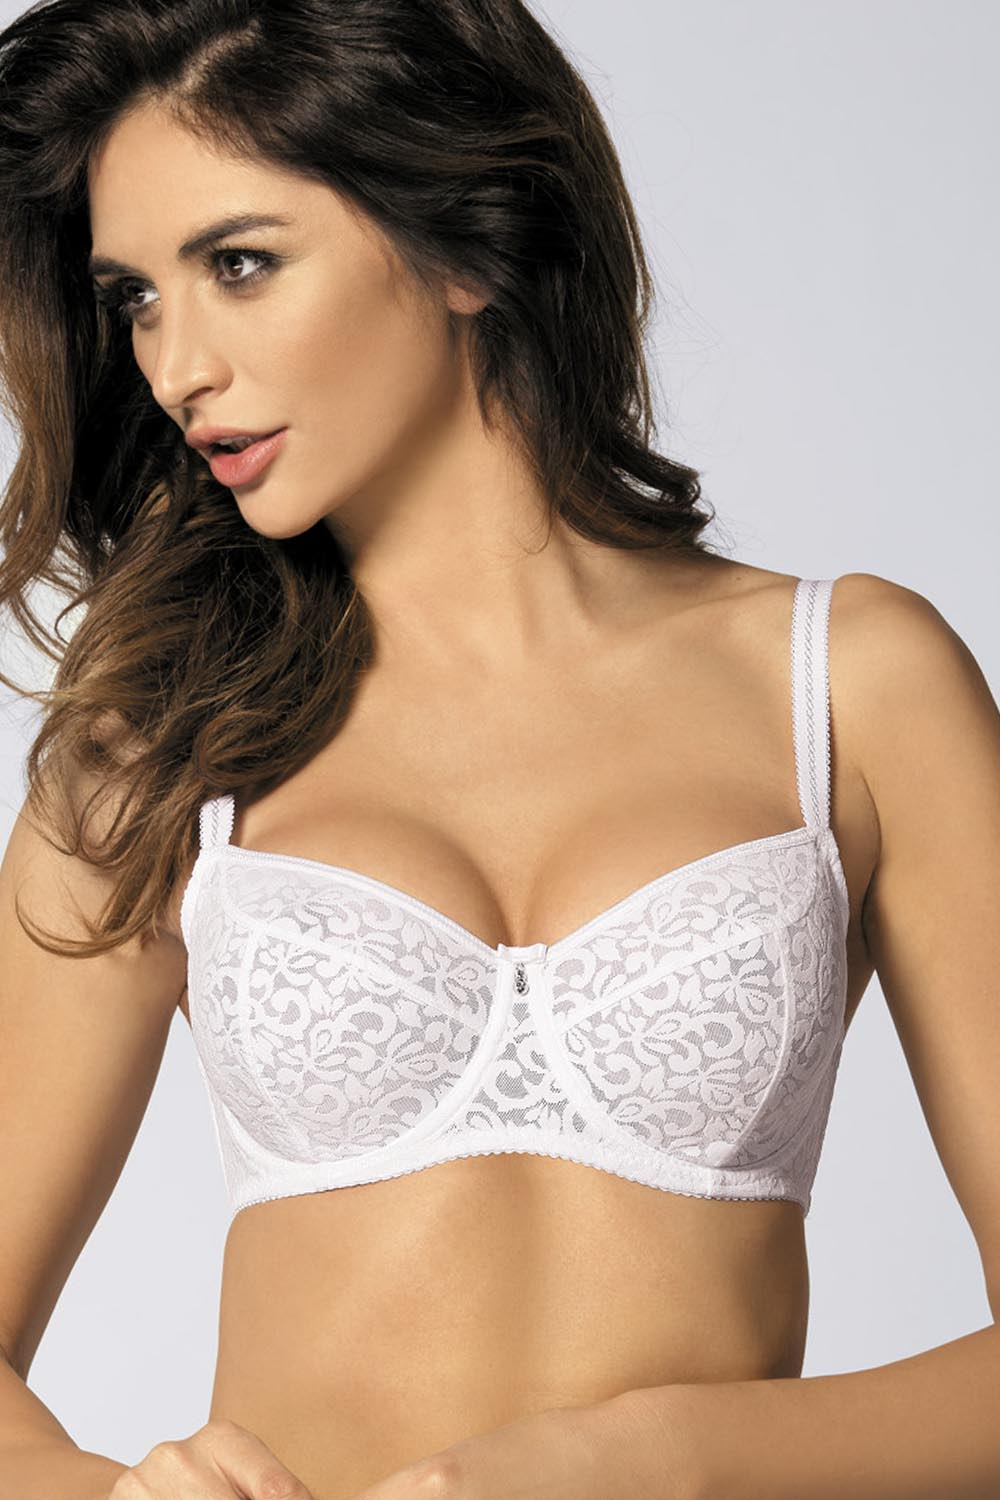 3fcf802d823a47 Gorteks Marilyn/B2 underwired bra without padding for big bust adjustable  straps | White